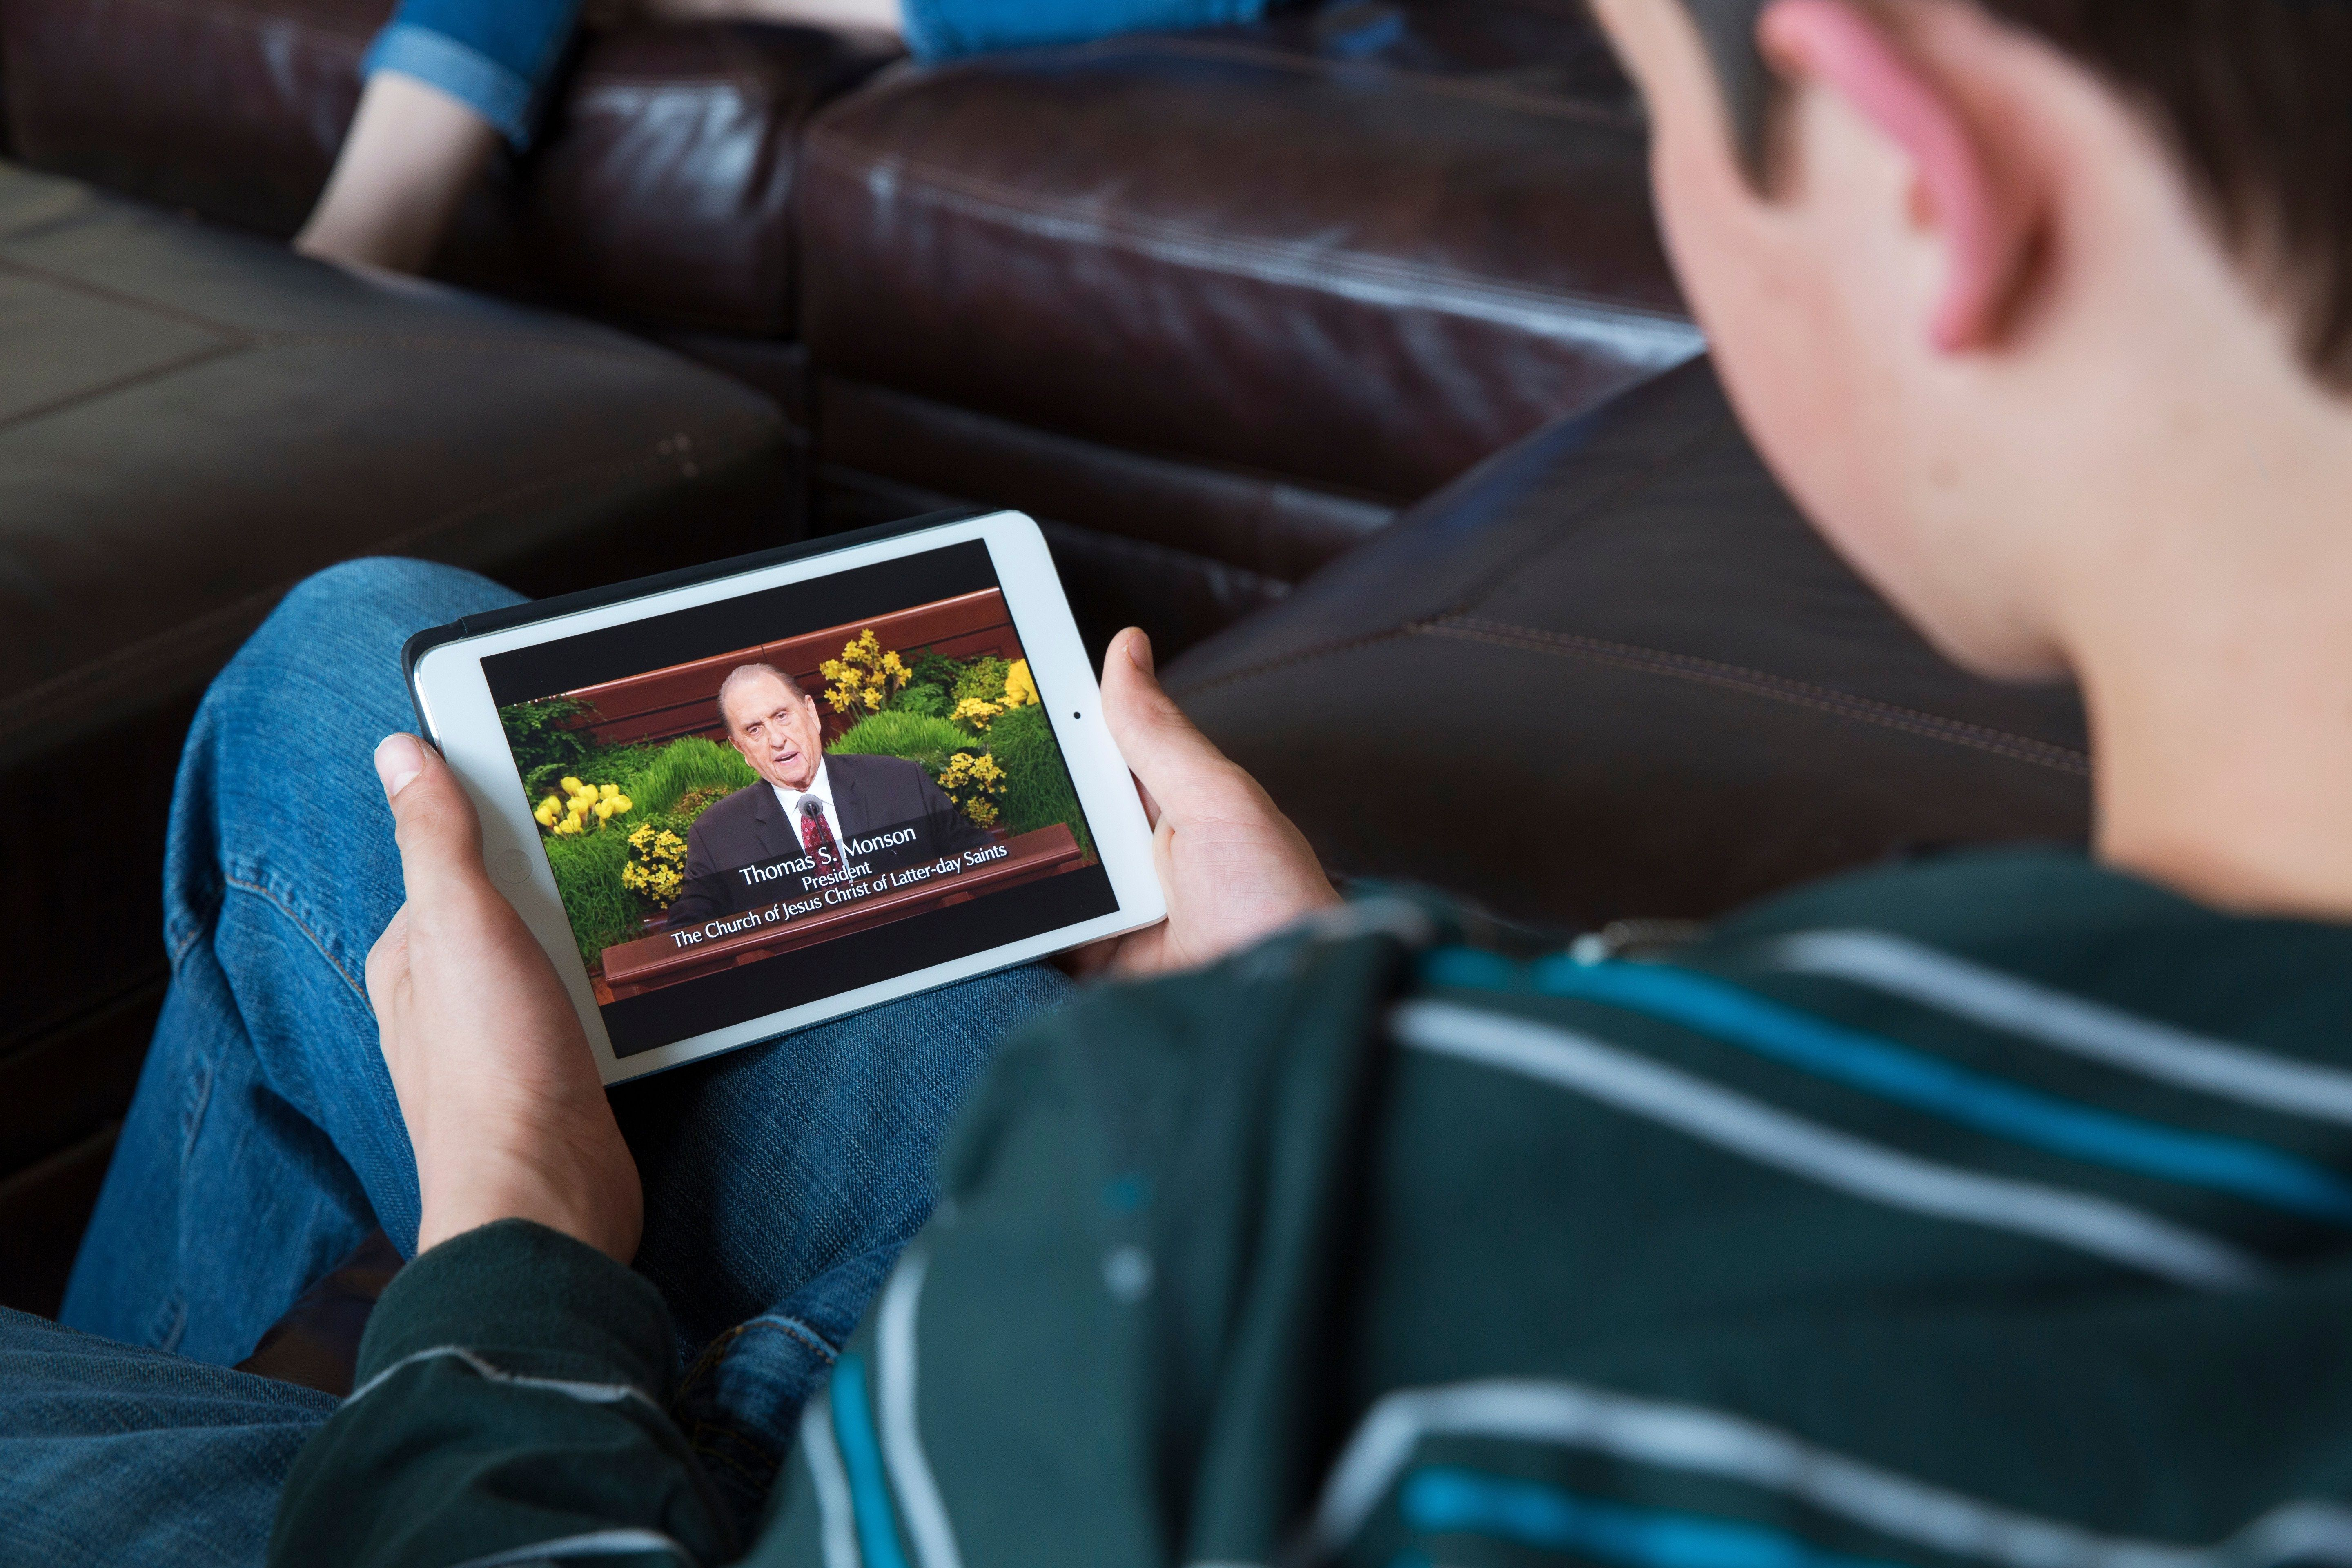 A young man at home watching general conference on his tablet.